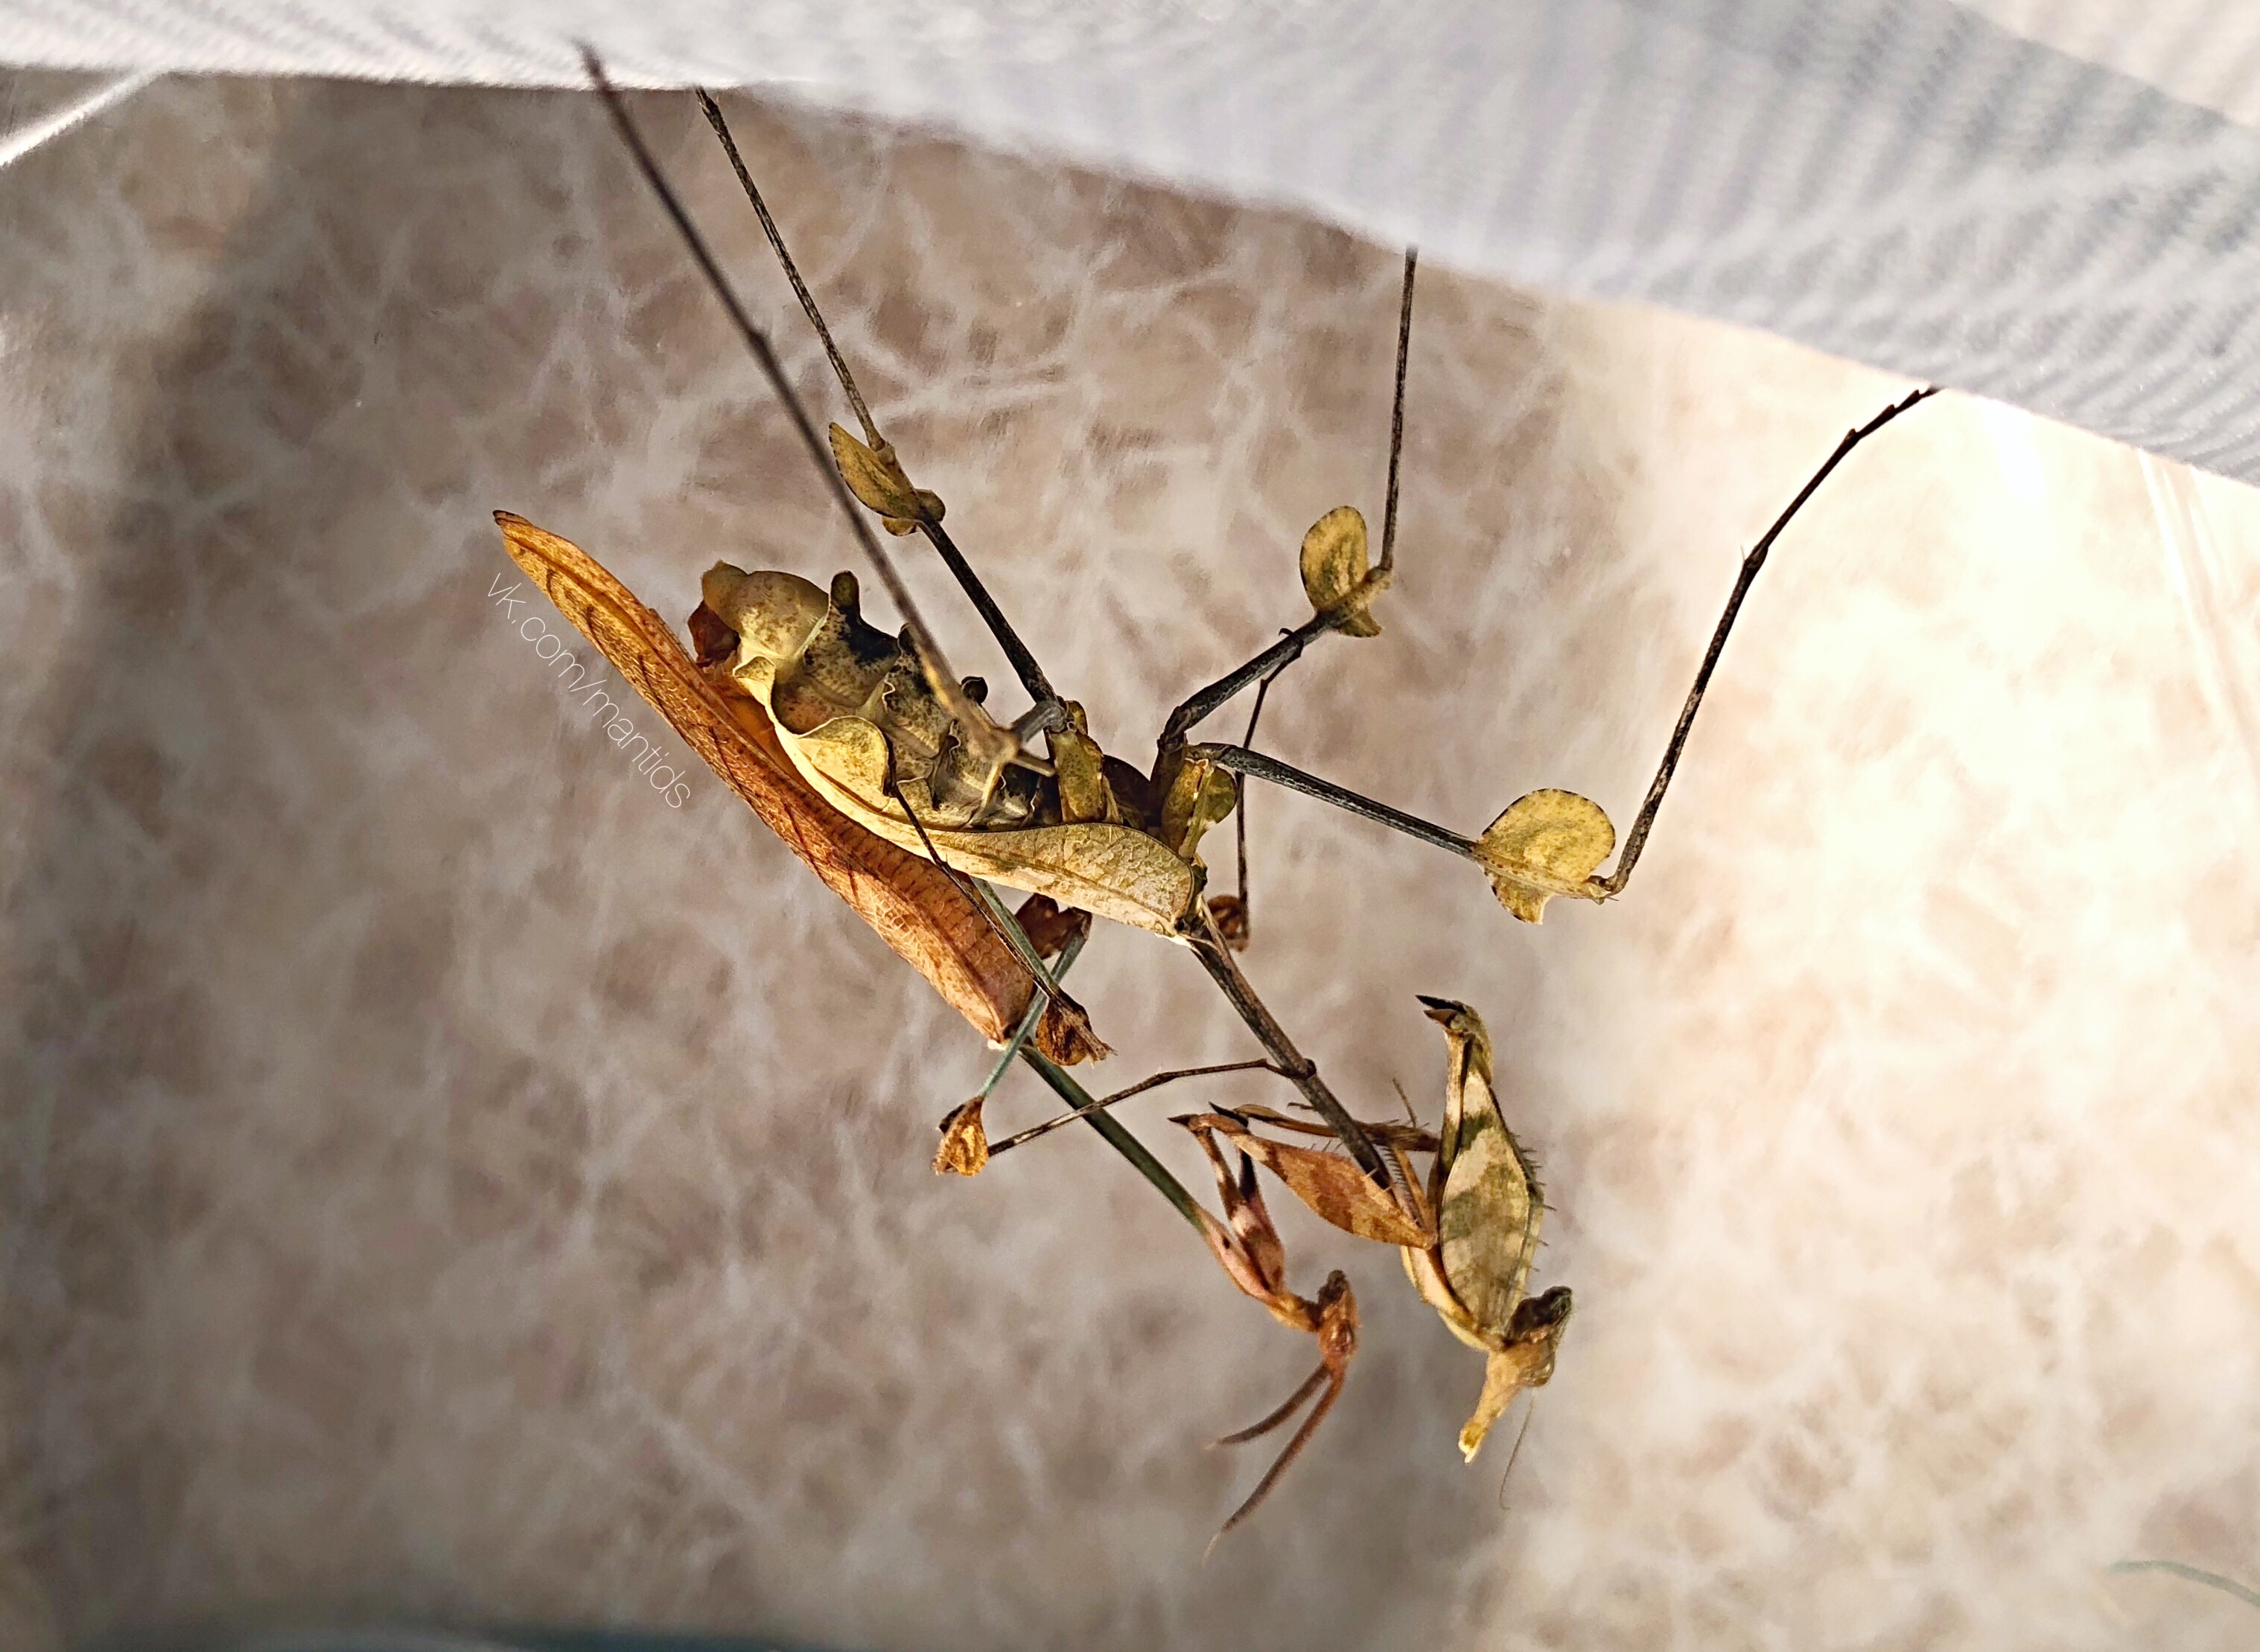 https://prayingmantis.ru/wp-content/uploads/2018/10/Gongylus-gongylodes-mating-main.jpg